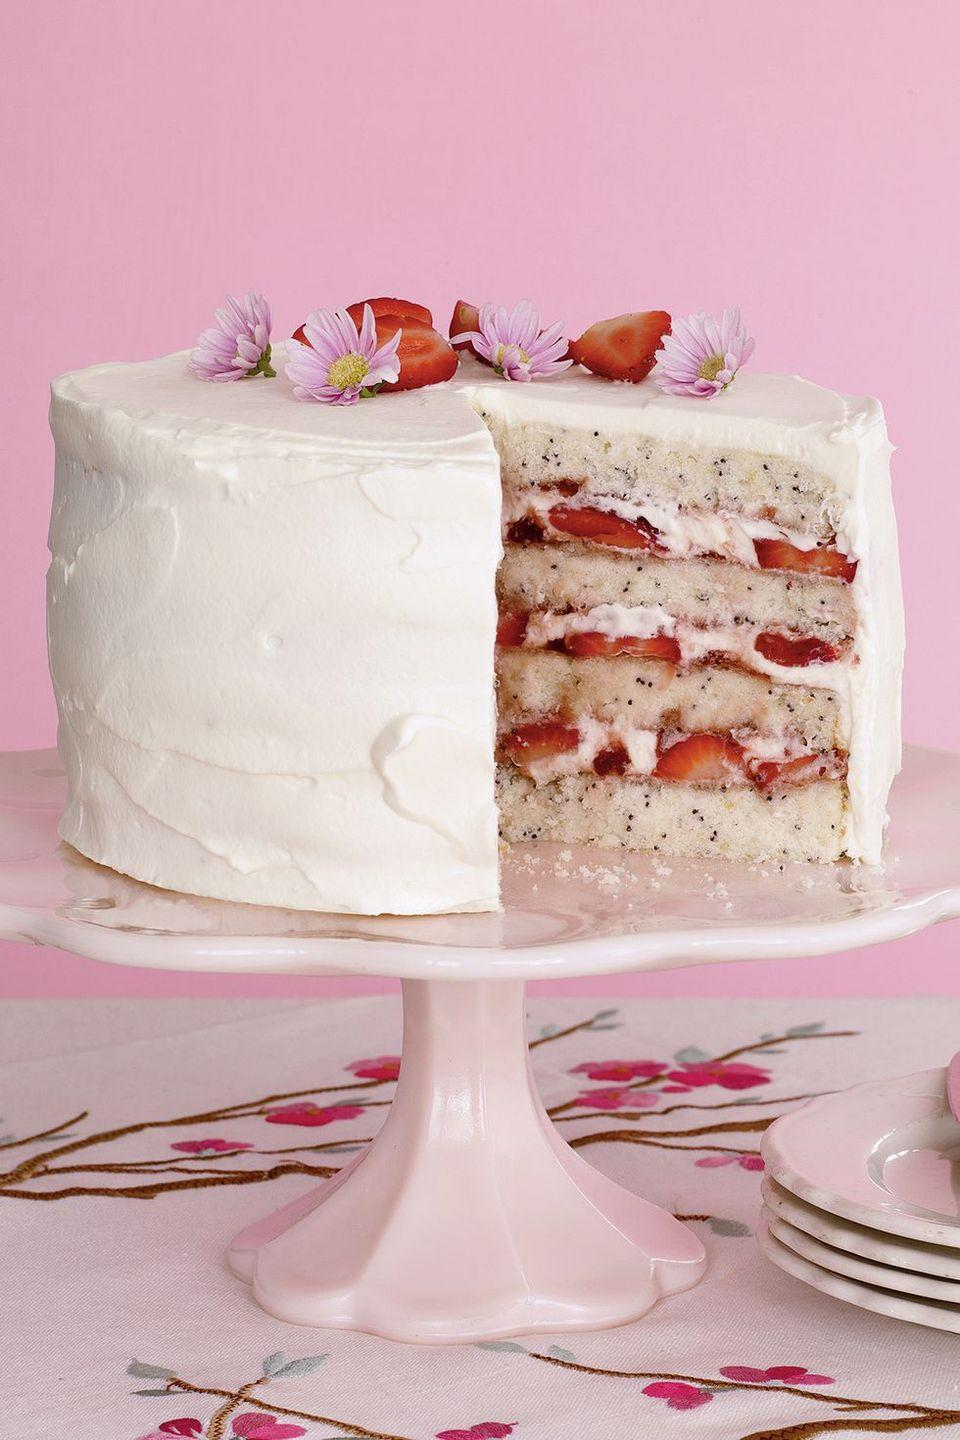 """<p>Guests will love the alternating layers of cake, fresh strawberries, and jam in this fresh cake recipe. Throw edible flowers on top for decoration.</p><p><a href=""""https://www.womansday.com/food-recipes/food-drinks/recipes/a10913/lemon-poppy-seed-cake-strawberries-recipe-122355/"""" rel=""""nofollow noopener"""" target=""""_blank"""" data-ylk=""""slk:Get the recipe for Lemon Poppy Seed Cake with Strawberries."""" class=""""link rapid-noclick-resp""""><em>Get the recipe for Lemon Poppy Seed Cake with Strawberries. </em></a></p>"""